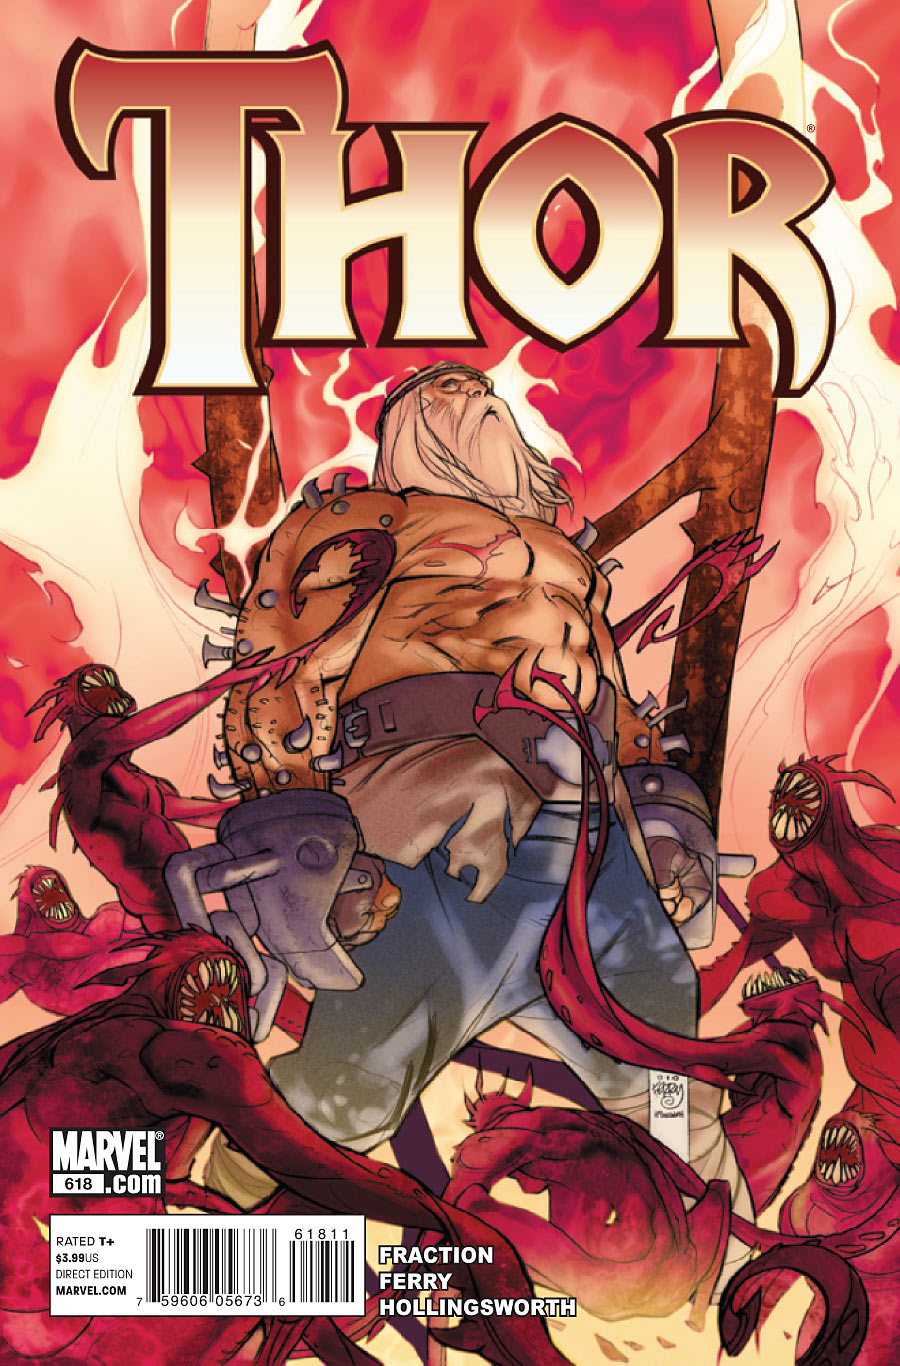 The latest issue of Marvel's THOR features Odin the All-Father and his return from the death of Limbo.